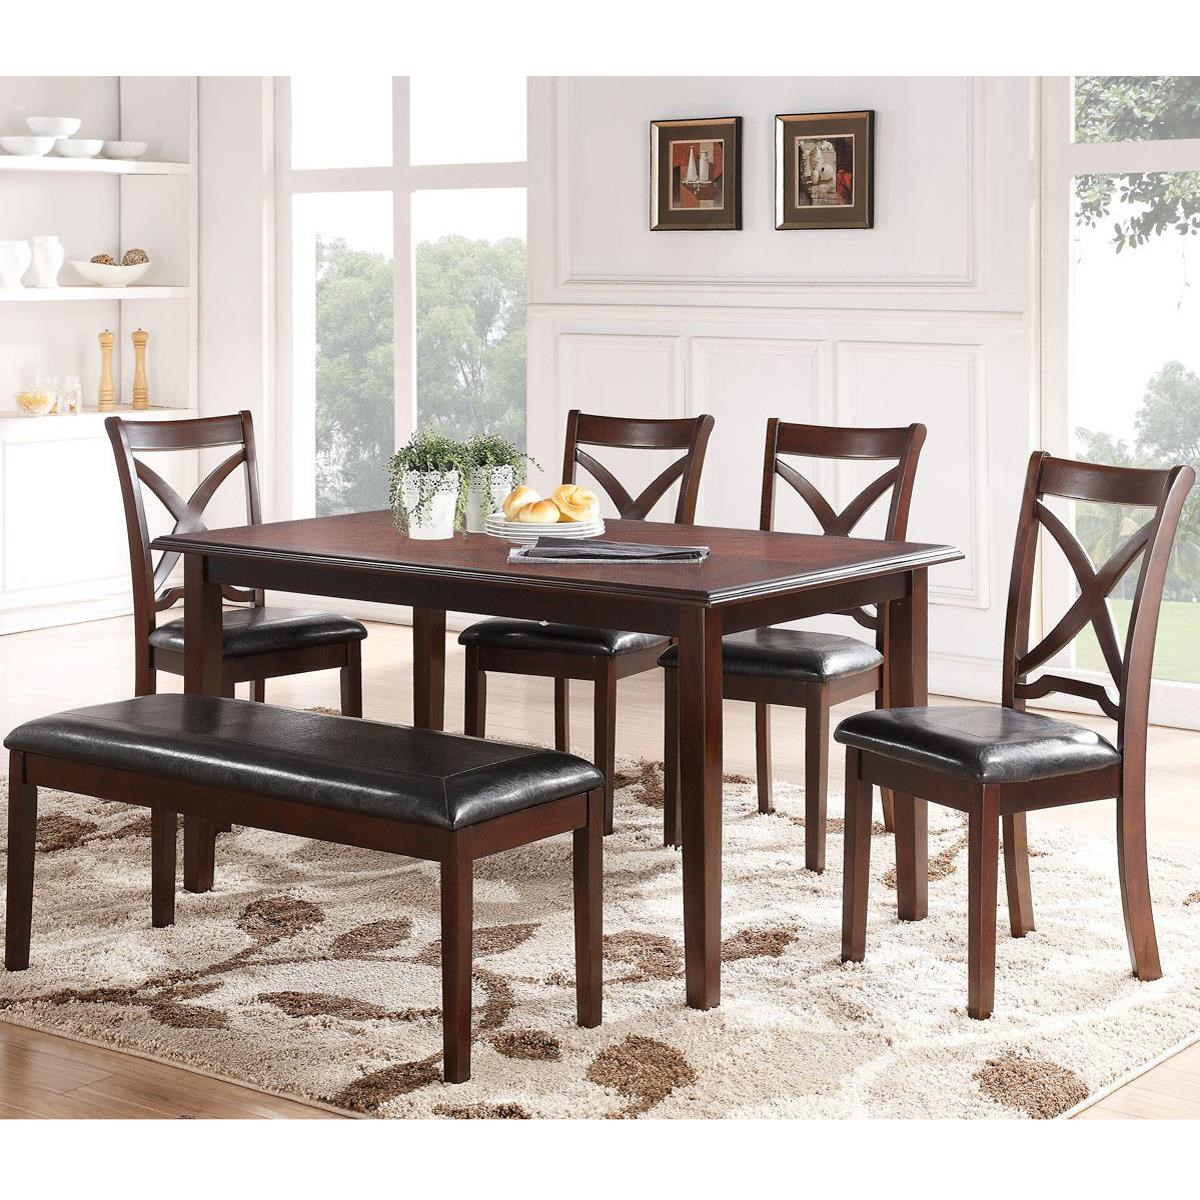 Charming Milo Dining Table And Chair Set With A Bench And Tapered Feet By New Classic